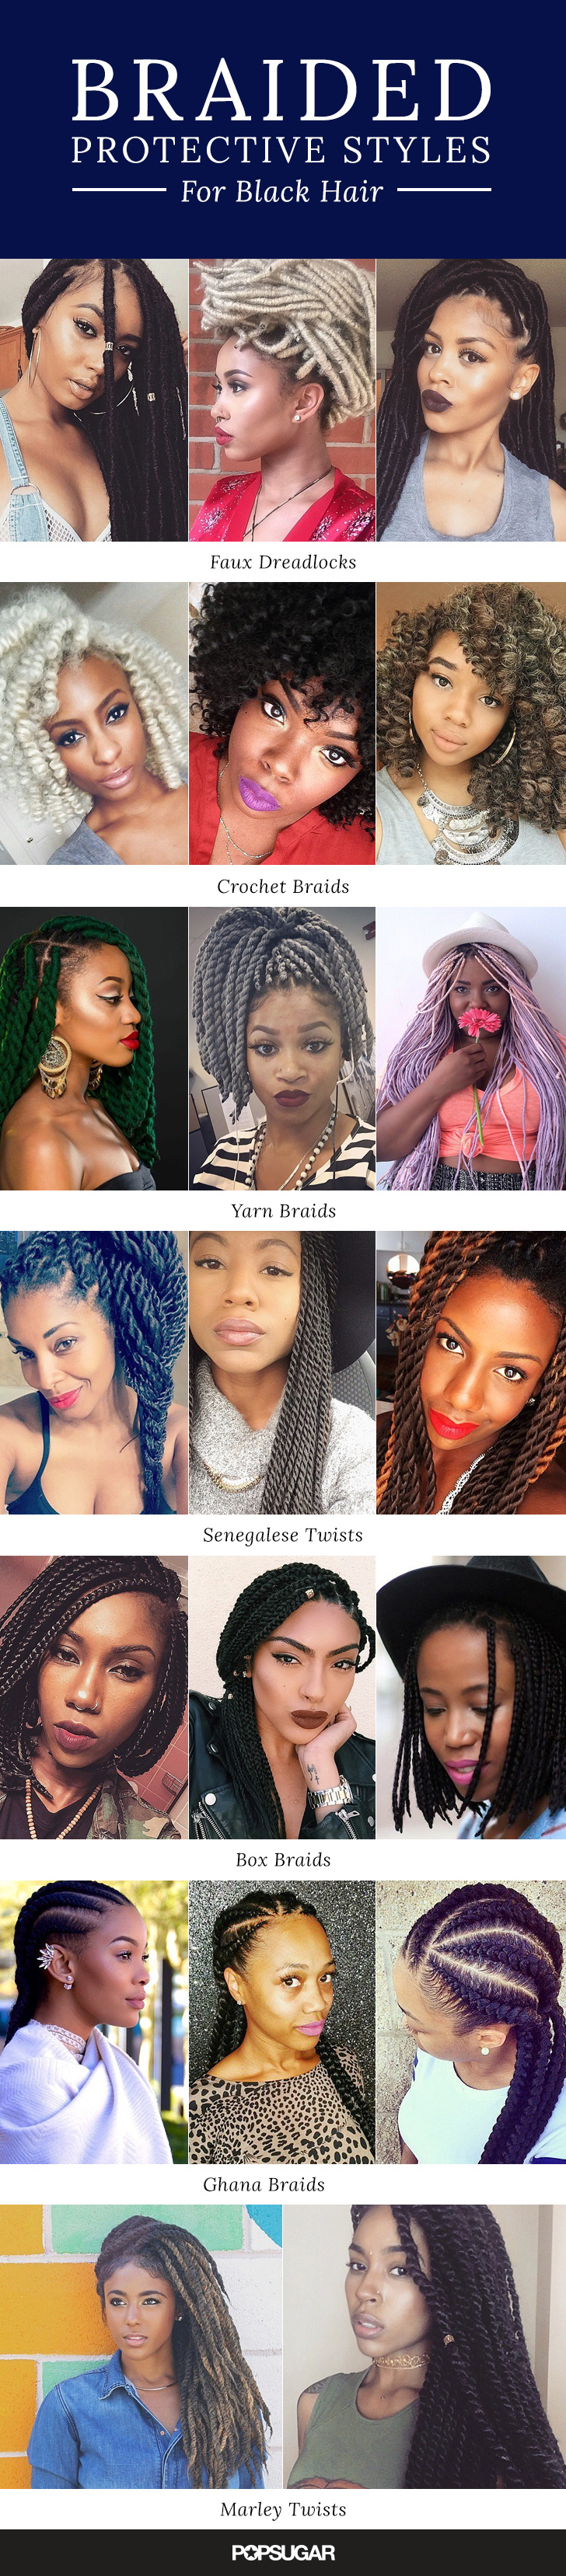 The Ultimate Guide To Summer Braids For Black Girls Black Braided